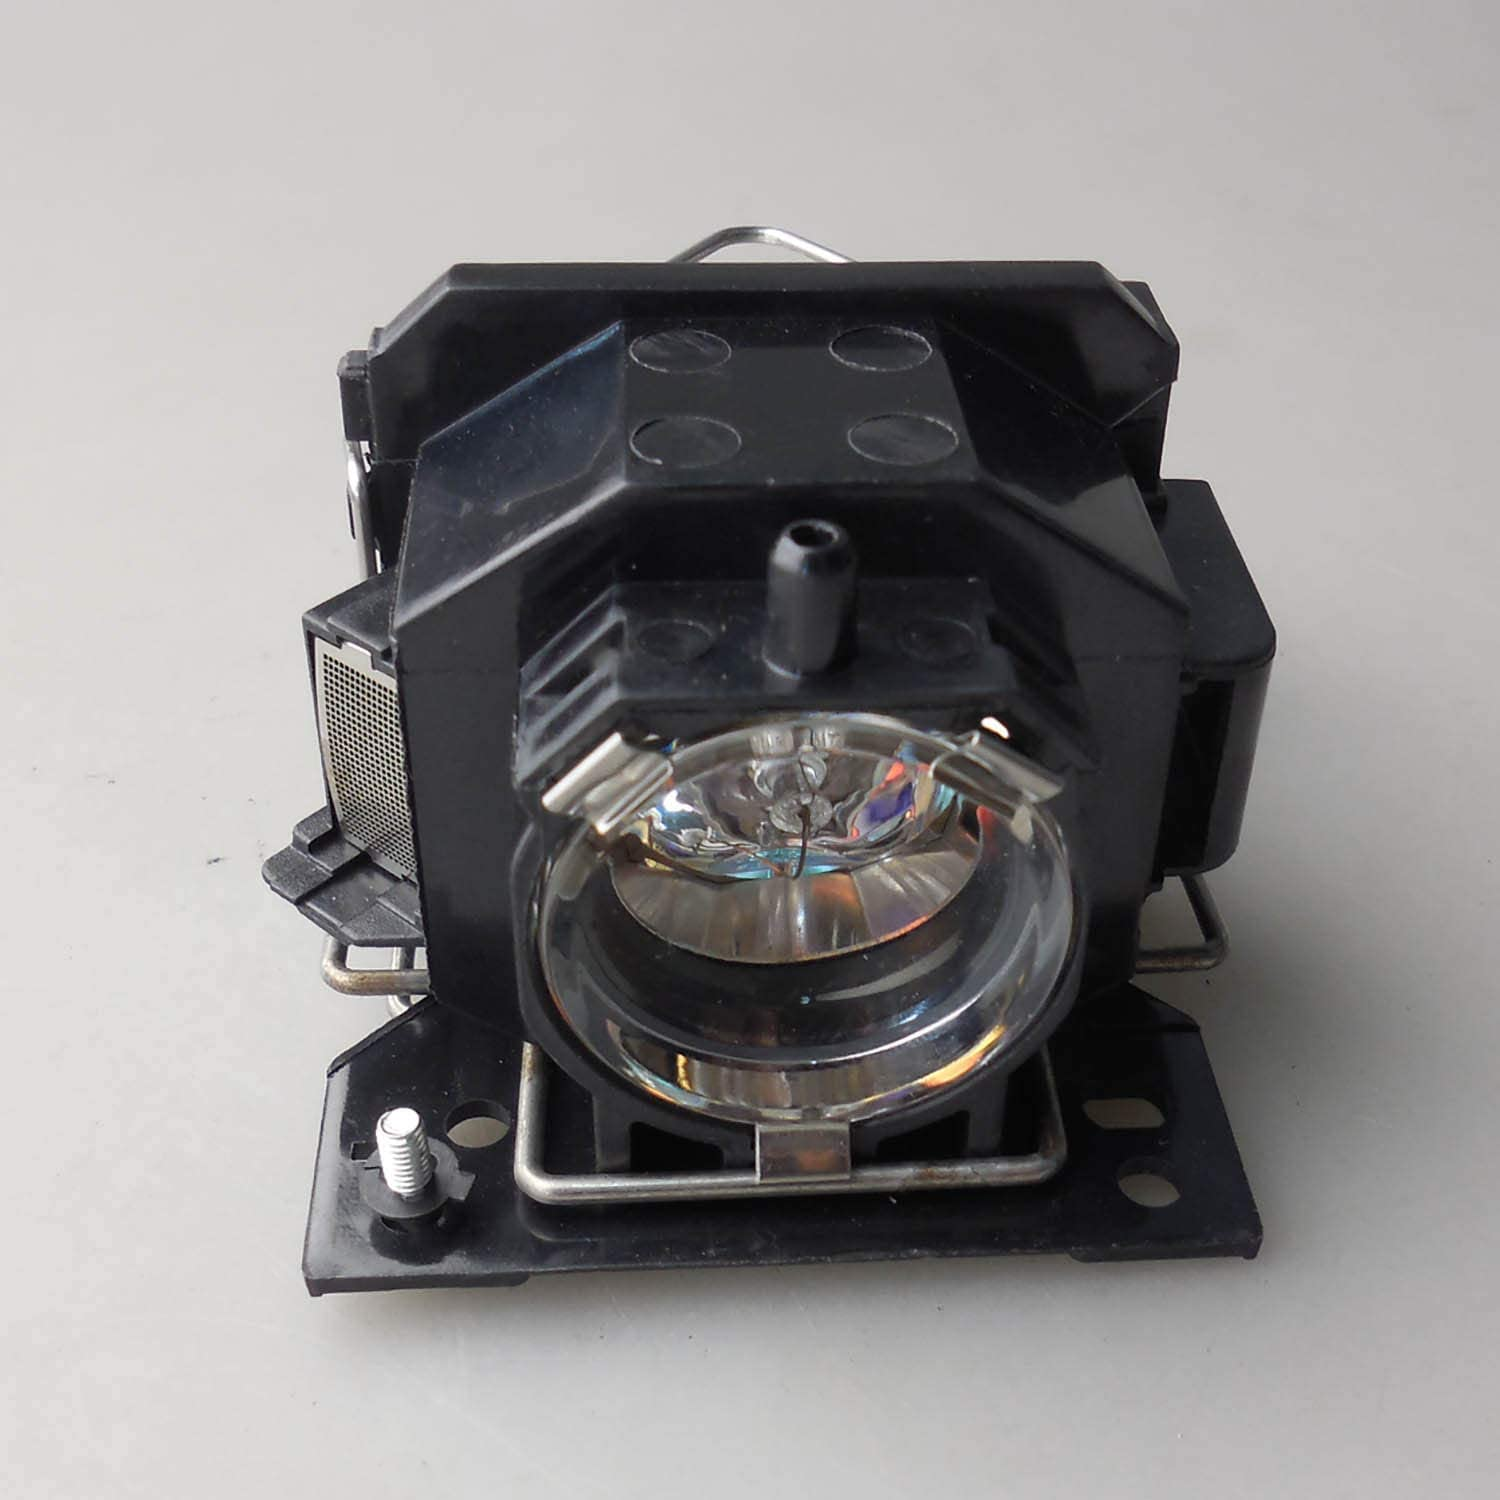 CTLAMP DT00821 CPX5LAMP Replacement Projector Lamp DT00821 Compatible Lamp with housing Compatible with Hitachi CP-X264 CP-X3 CP-X3W CP-X5 CP-X6 HCP-600X HCP-610X HCP-78XW CP-X5W